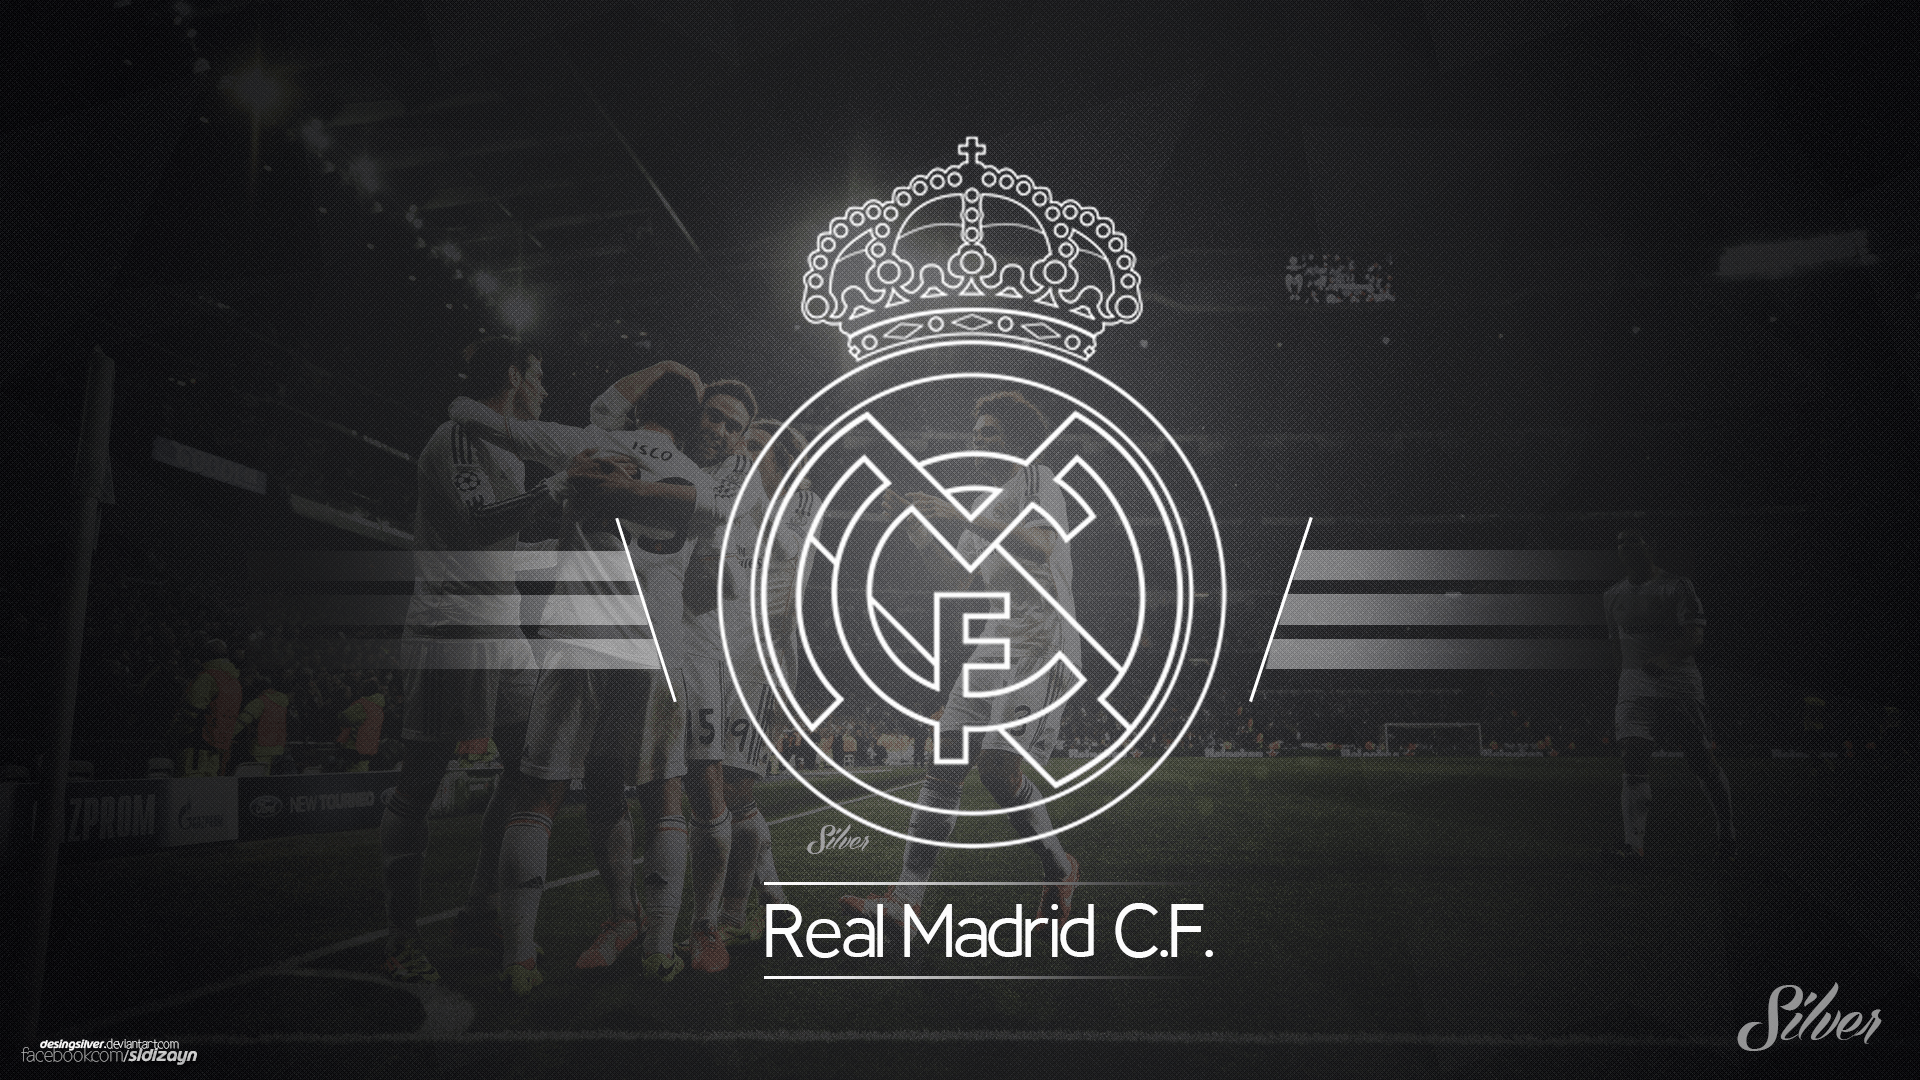 Black And White Madrid real madrid wallpapers black - wallpaper cave